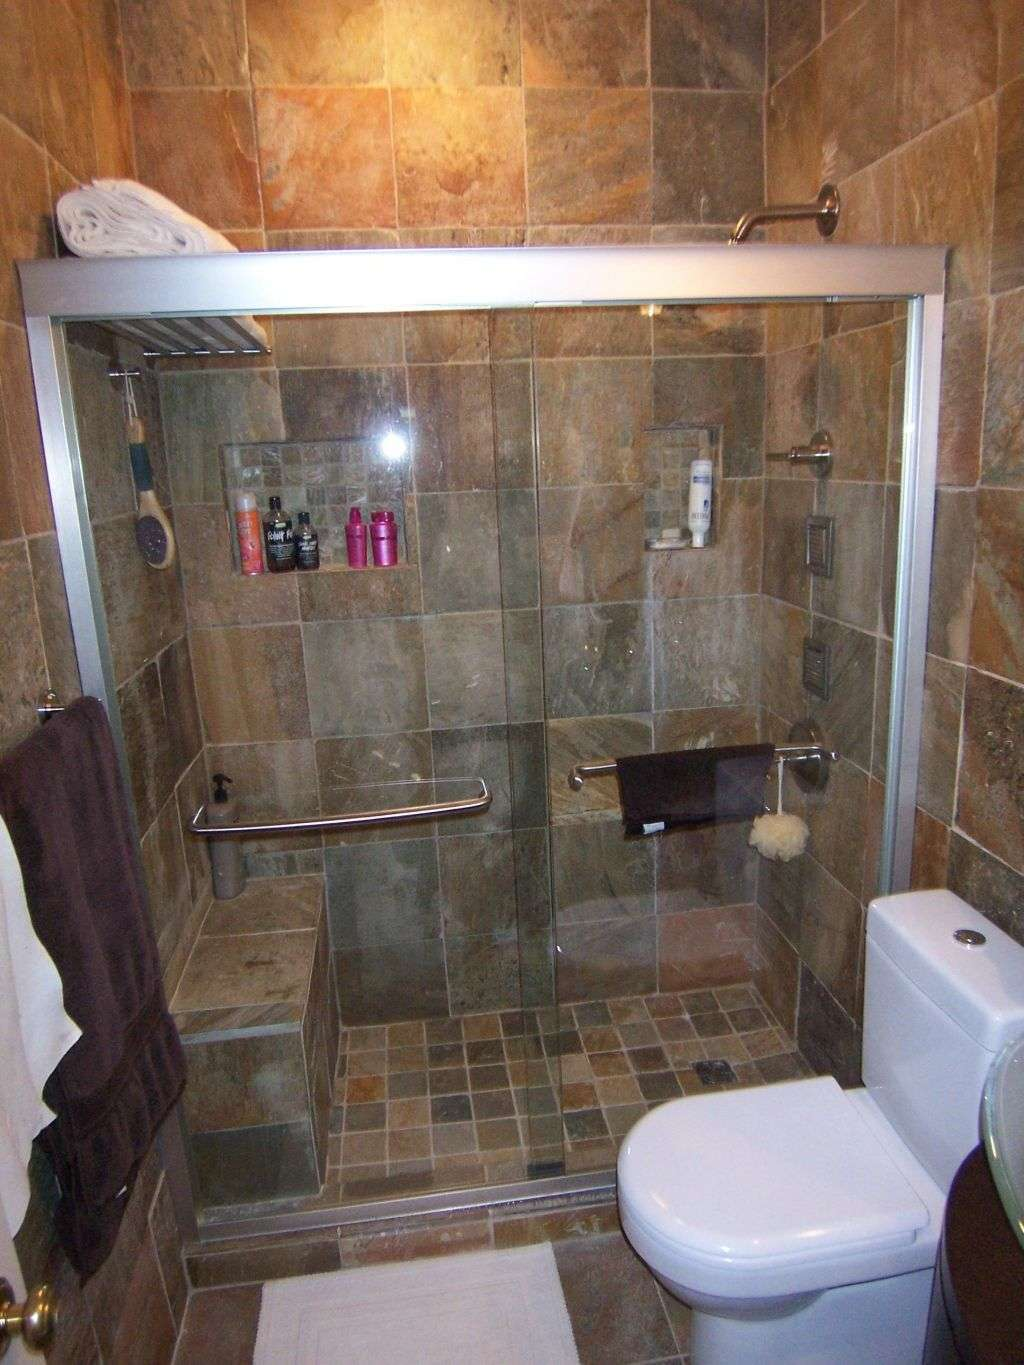 15 Latest & Best Small Bathroom Designs for Small Spaces